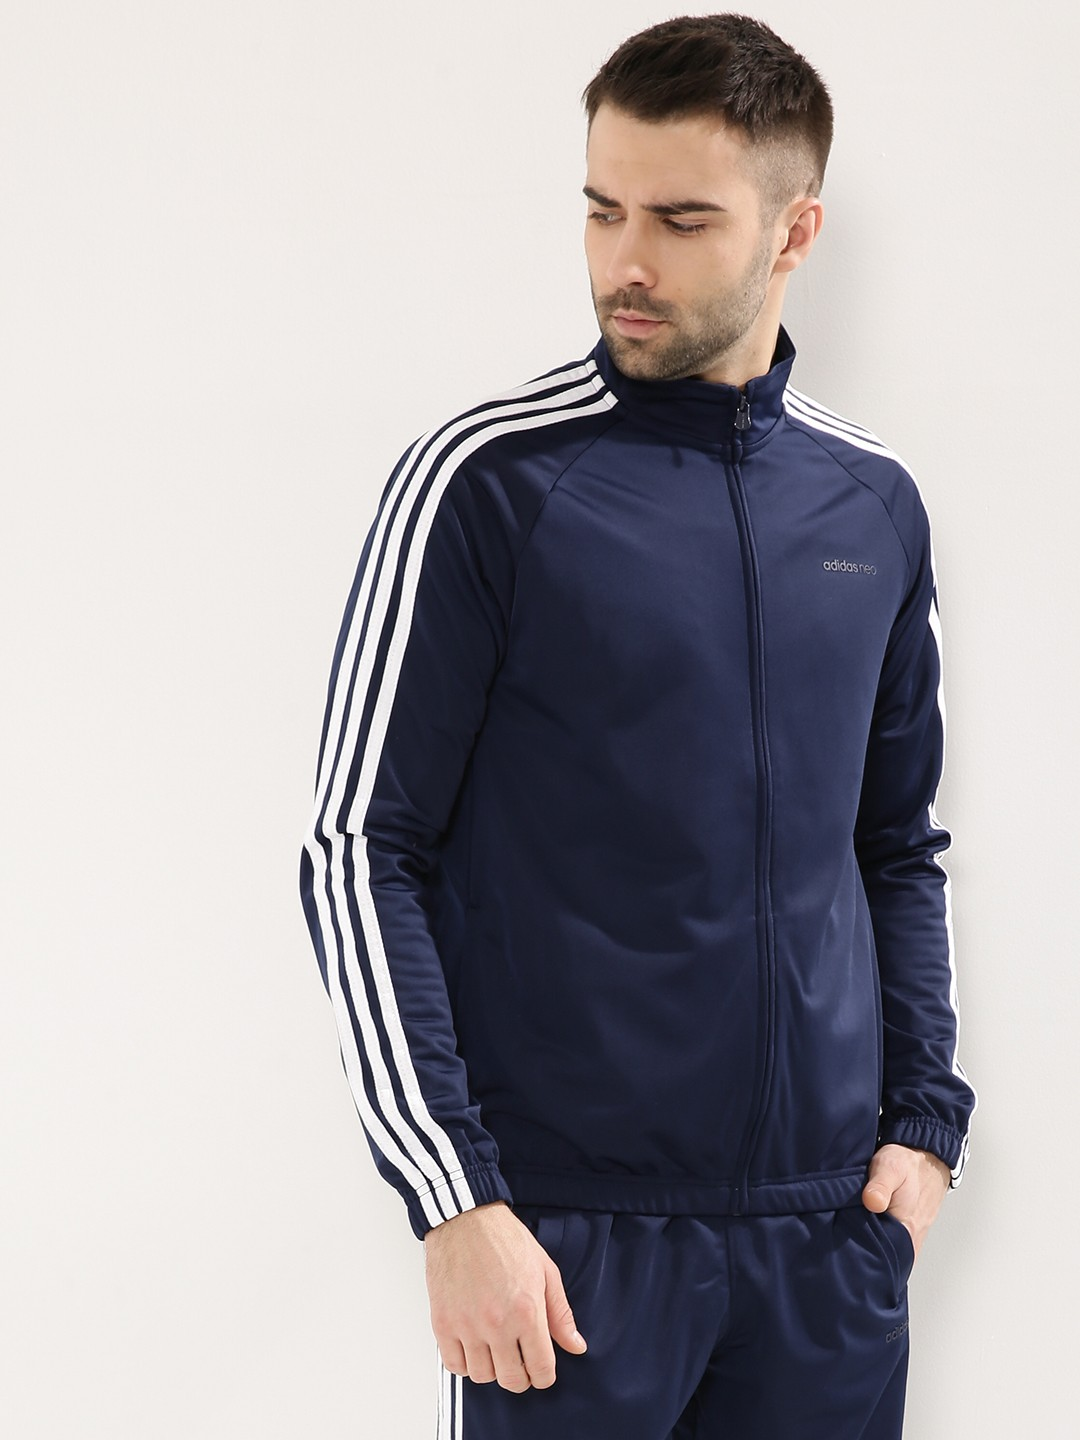 buy adidas neo track jacket with striped sleeves for men. Black Bedroom Furniture Sets. Home Design Ideas